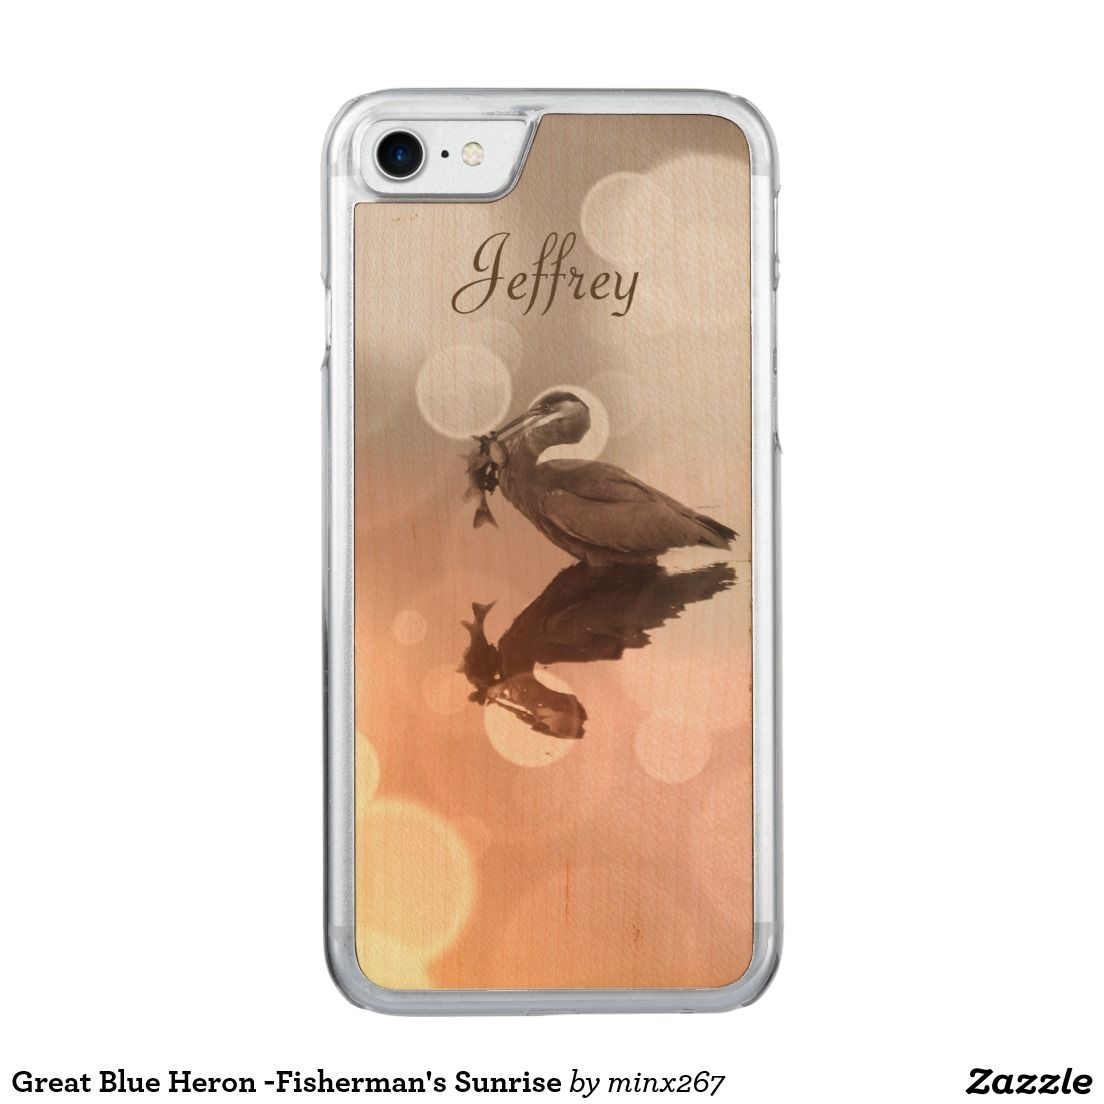 Great Blue Heron -Fisherman's Sunrise Carved iPhone 7 Case